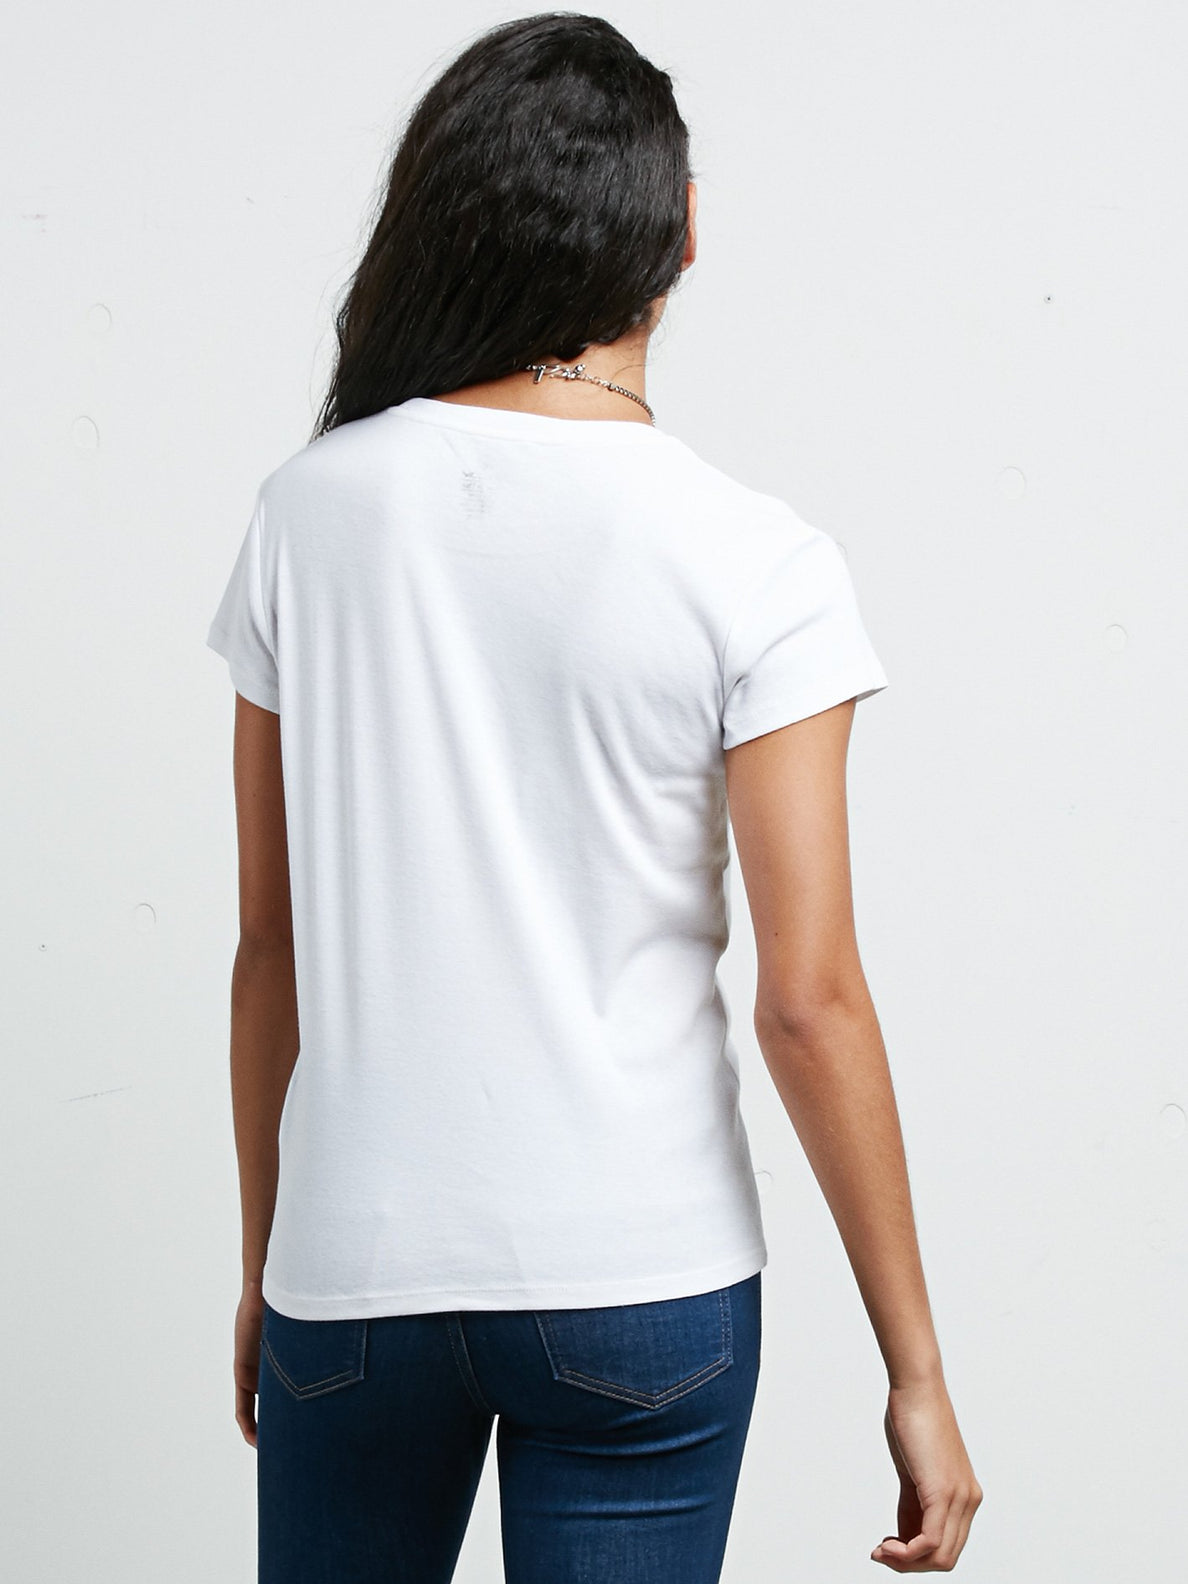 Easy Babe Rad 2 Tee - White